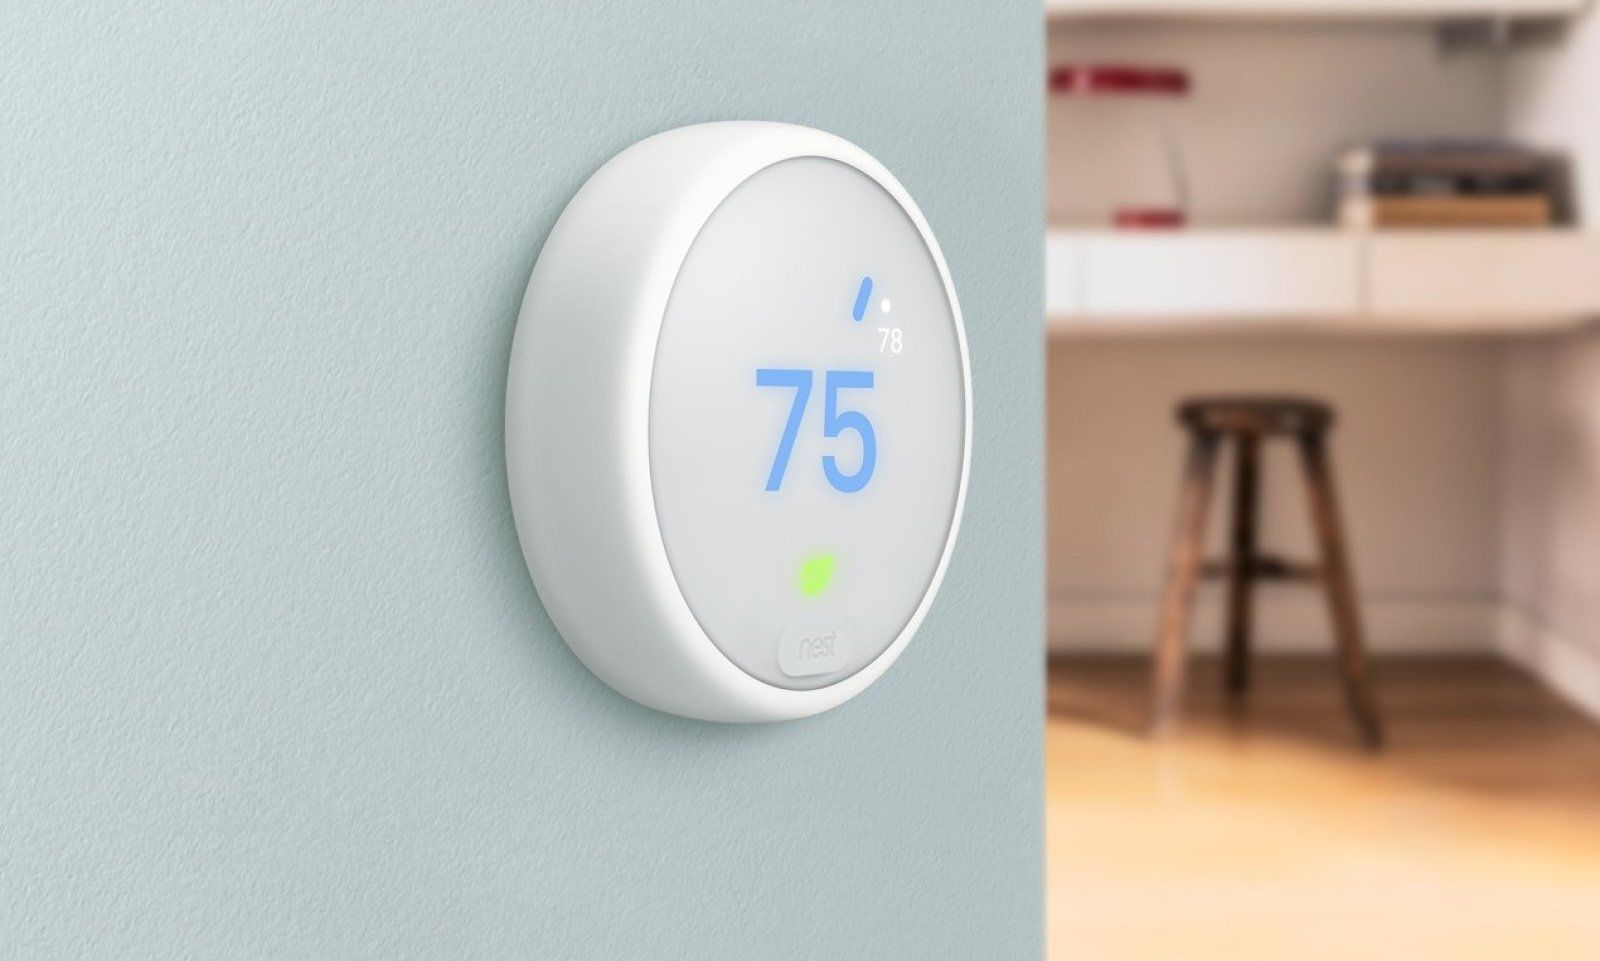 Nest makes its Seasonal Savings program free for all thermostat users